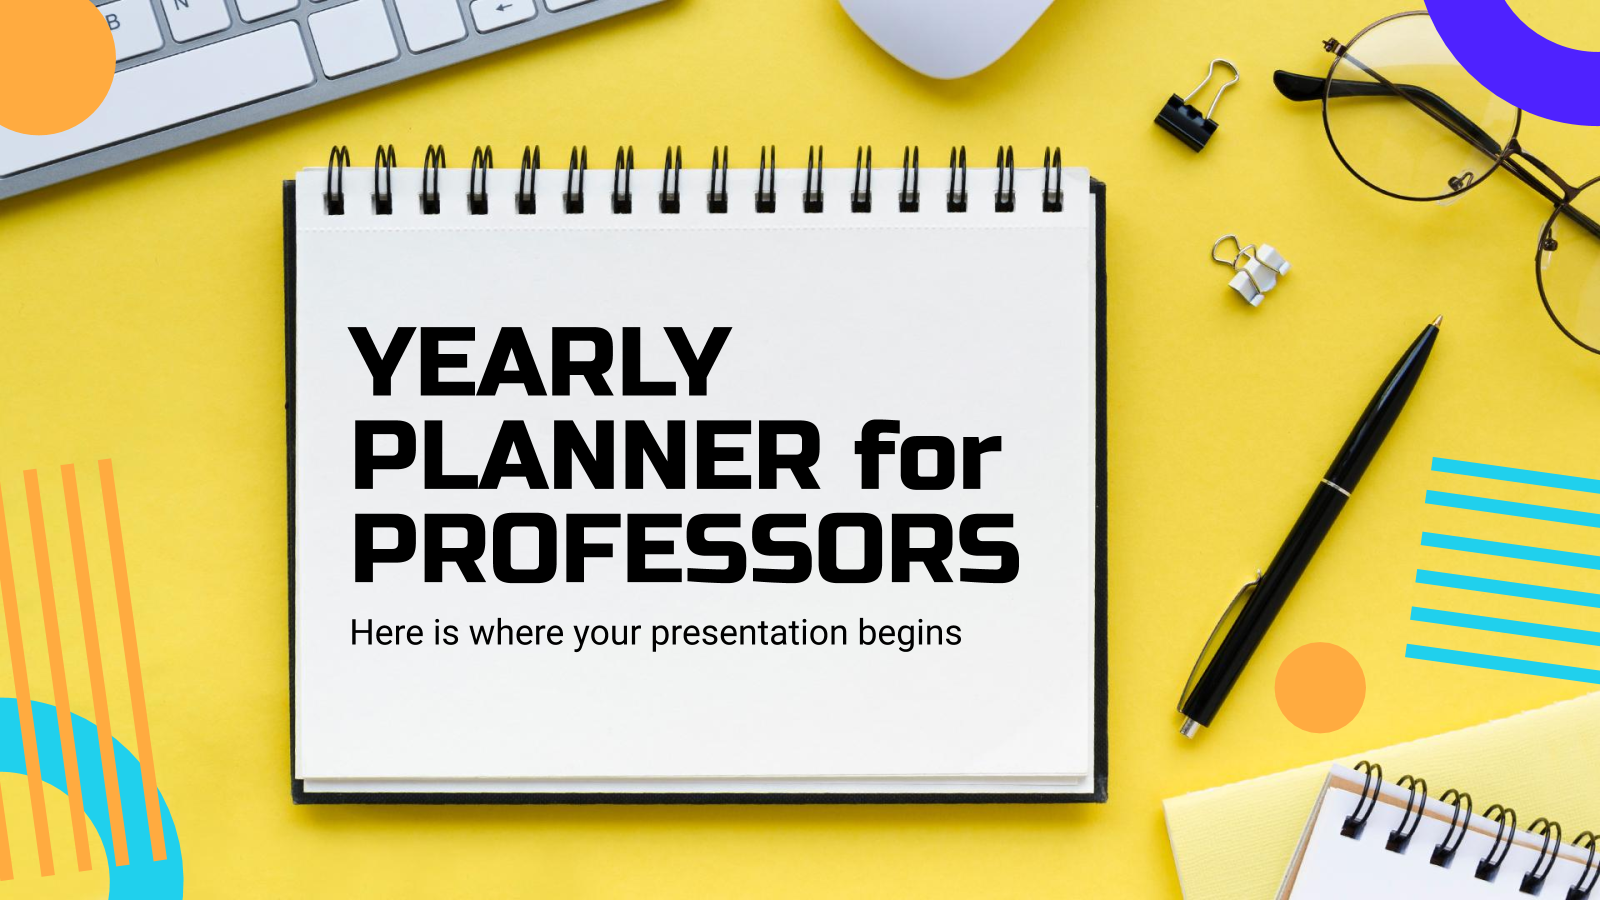 Yearly Planner for Professors presentation template